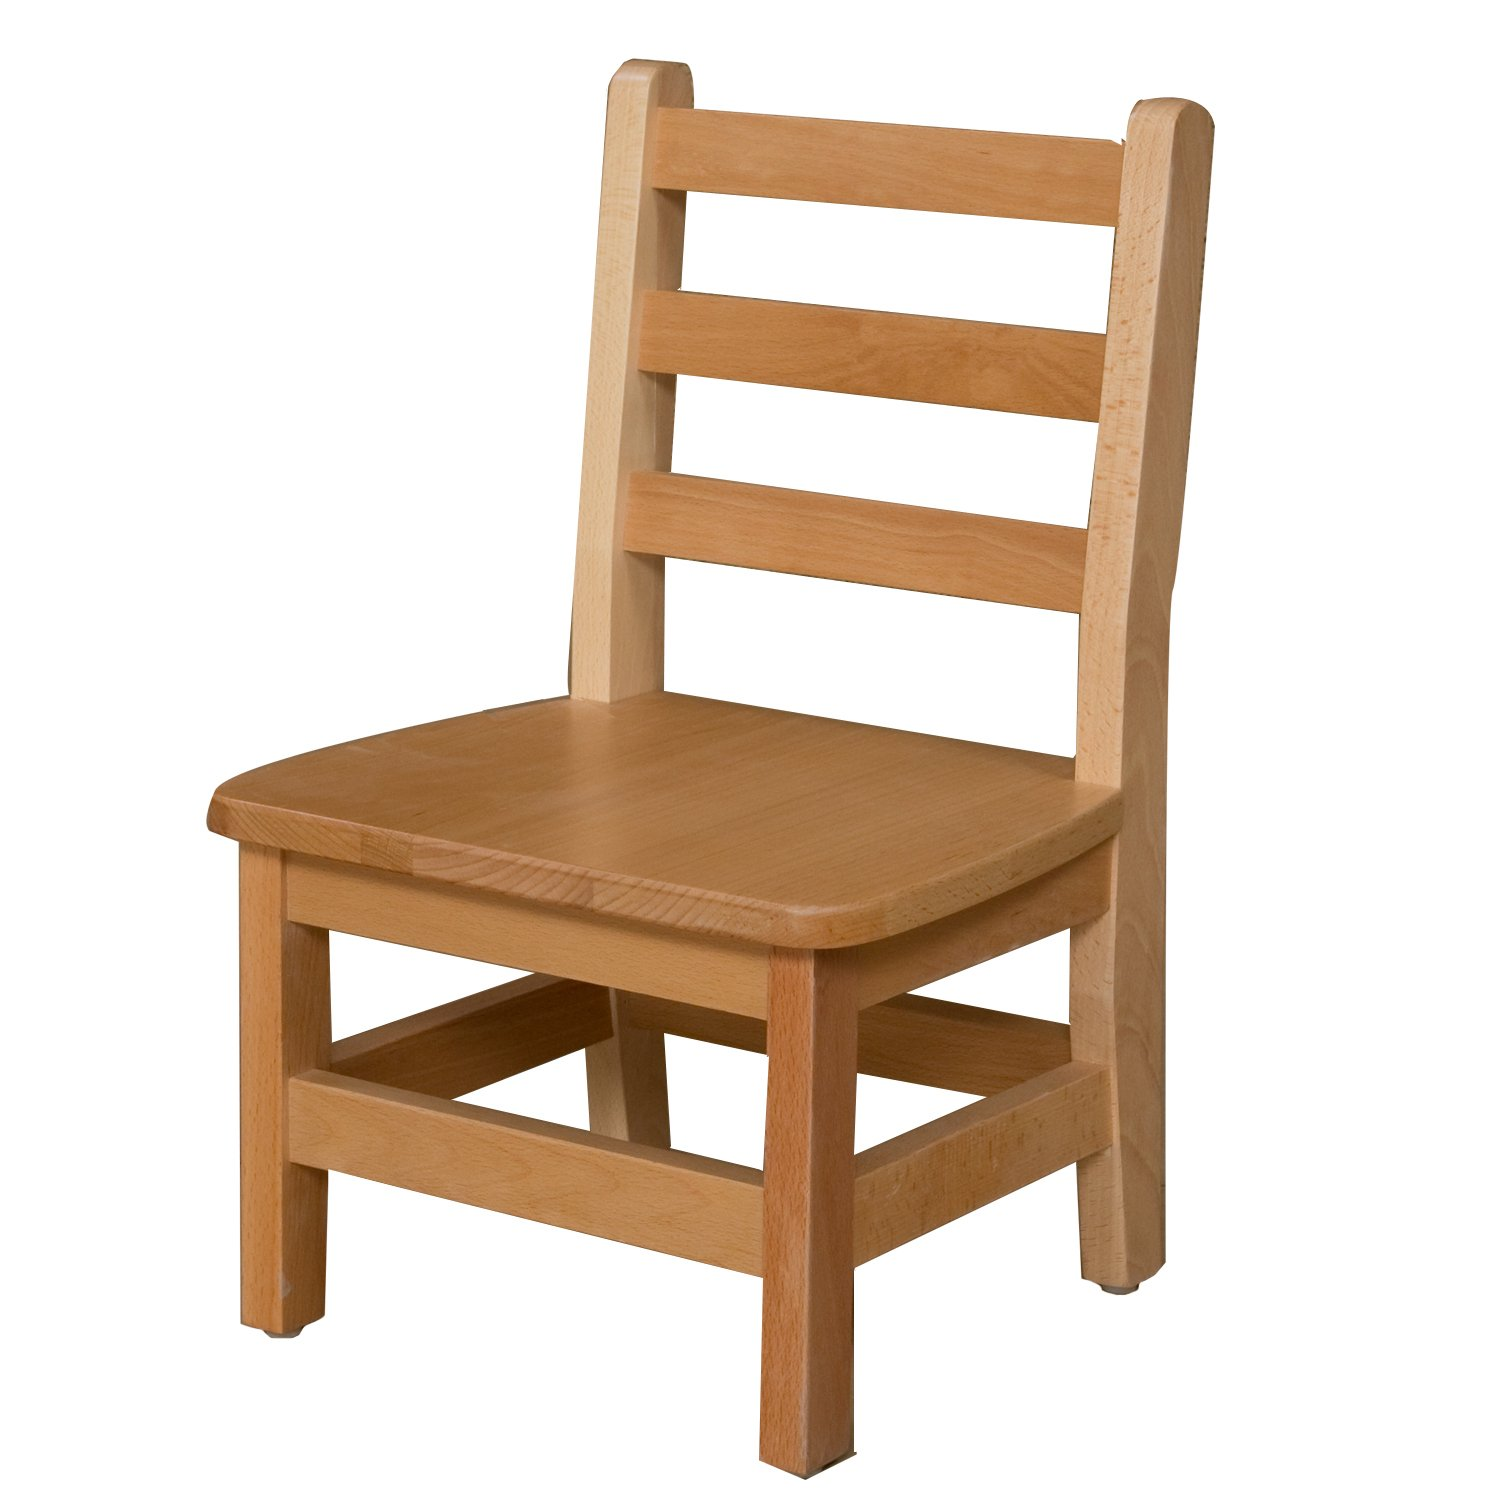 Wood Designs WD81001 Child's Chair, 10'' Height Seat, (1) Per Carton